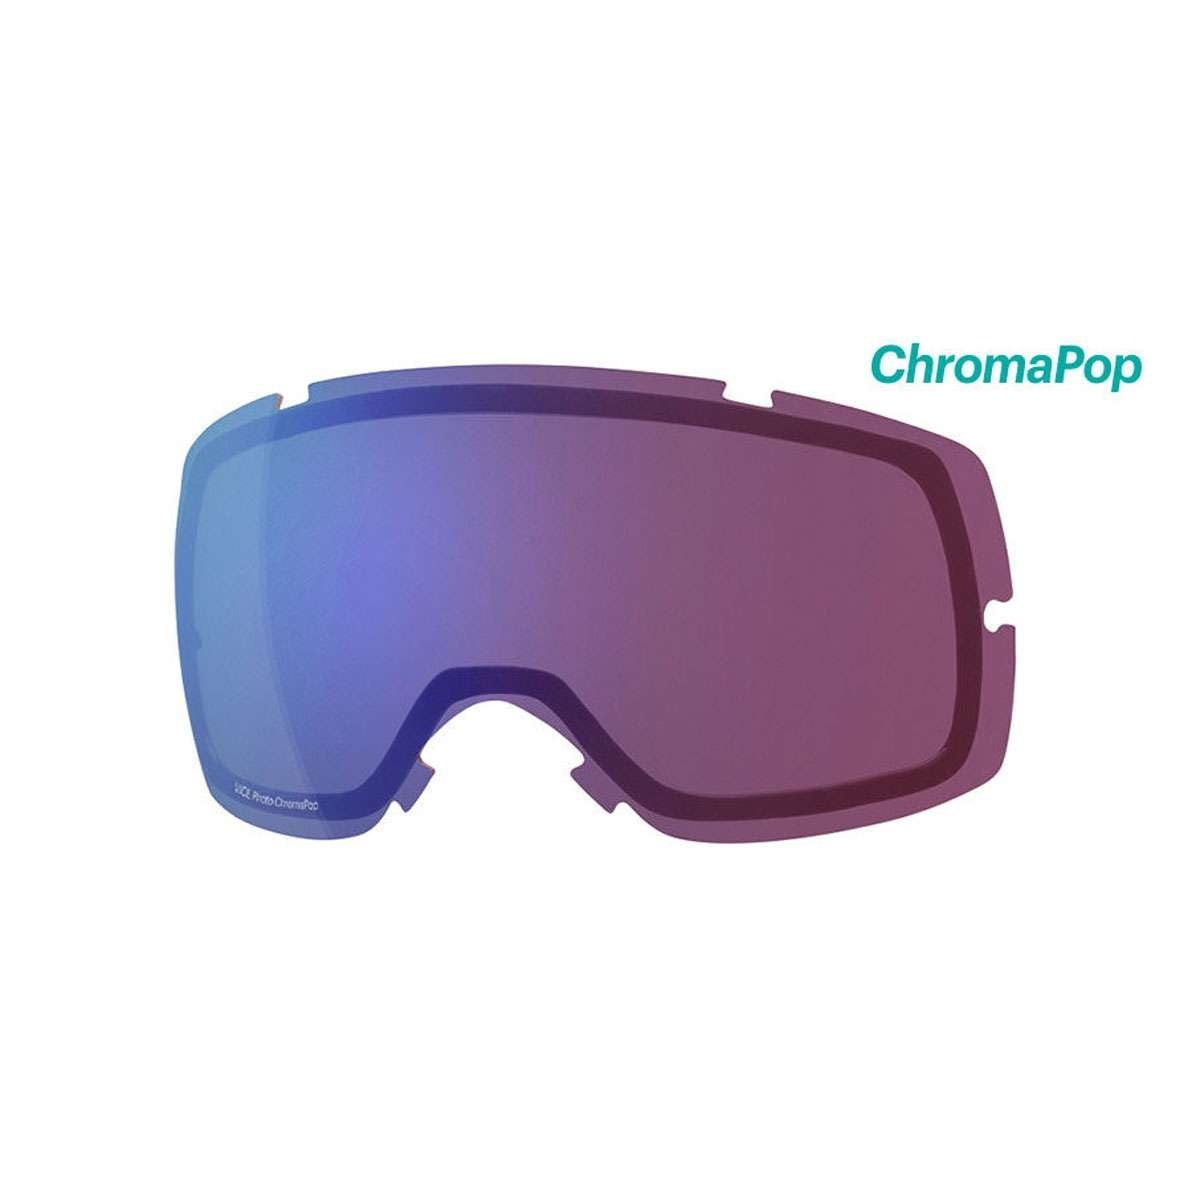 cddca494aa02f Shop Smith Optics Vice Ski Goggle - Replacement Lens - ChromaPop  Photochromic Rose Flash - VC6CPZ2 - Free Shipping Today - Overstock -  20666447